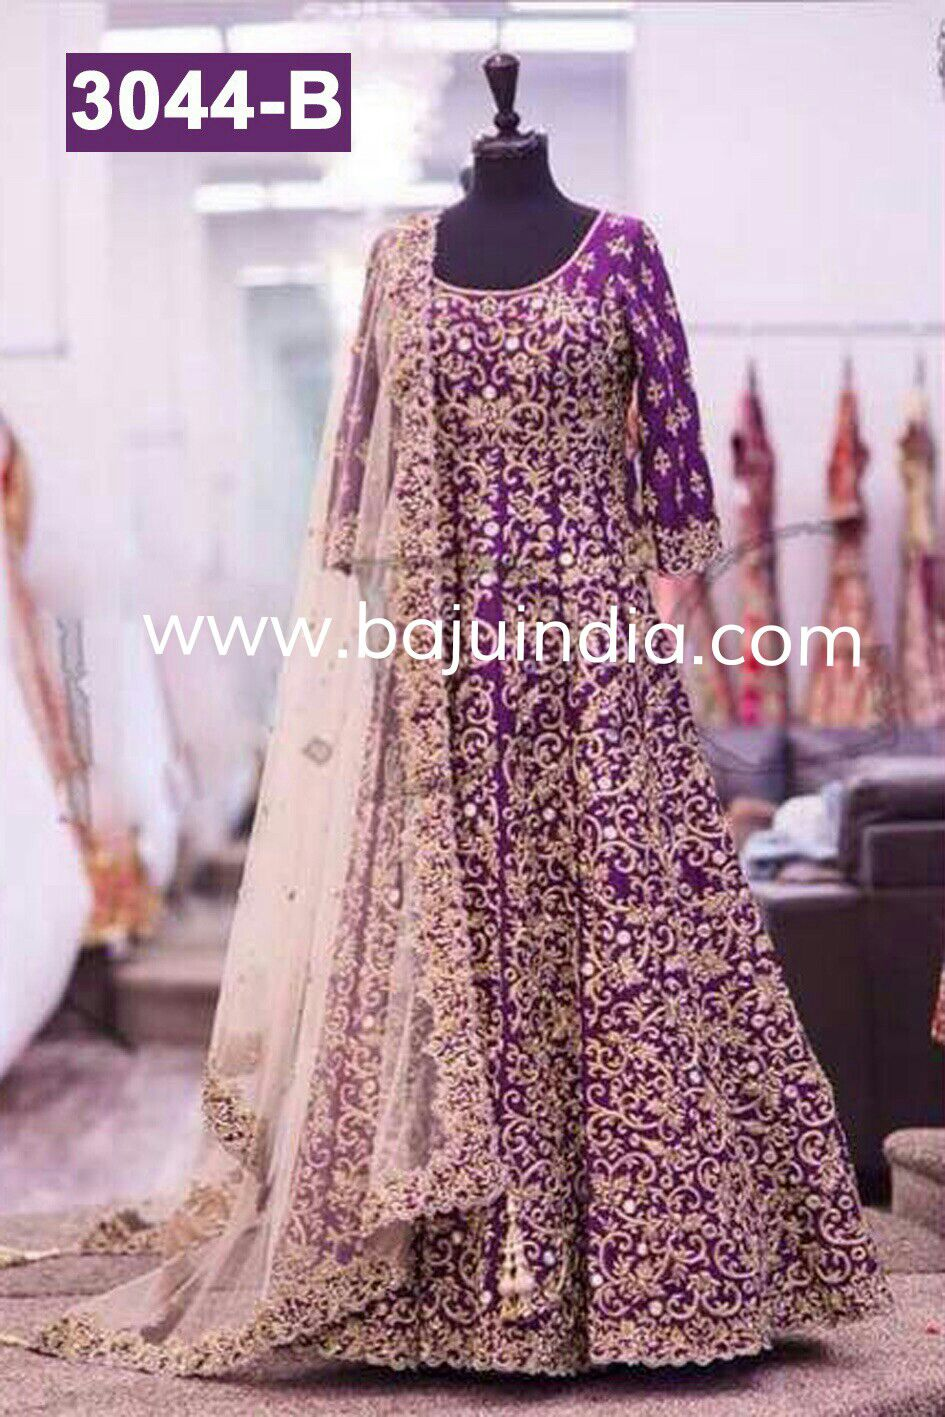 Baju India Muslim - Baju India Modern - Baju Khas India - Baju Adat India - Sari India Terbaru - Sari India Muslim - Baju Kerajaan India - Baju Salwaar India -  3044 - B